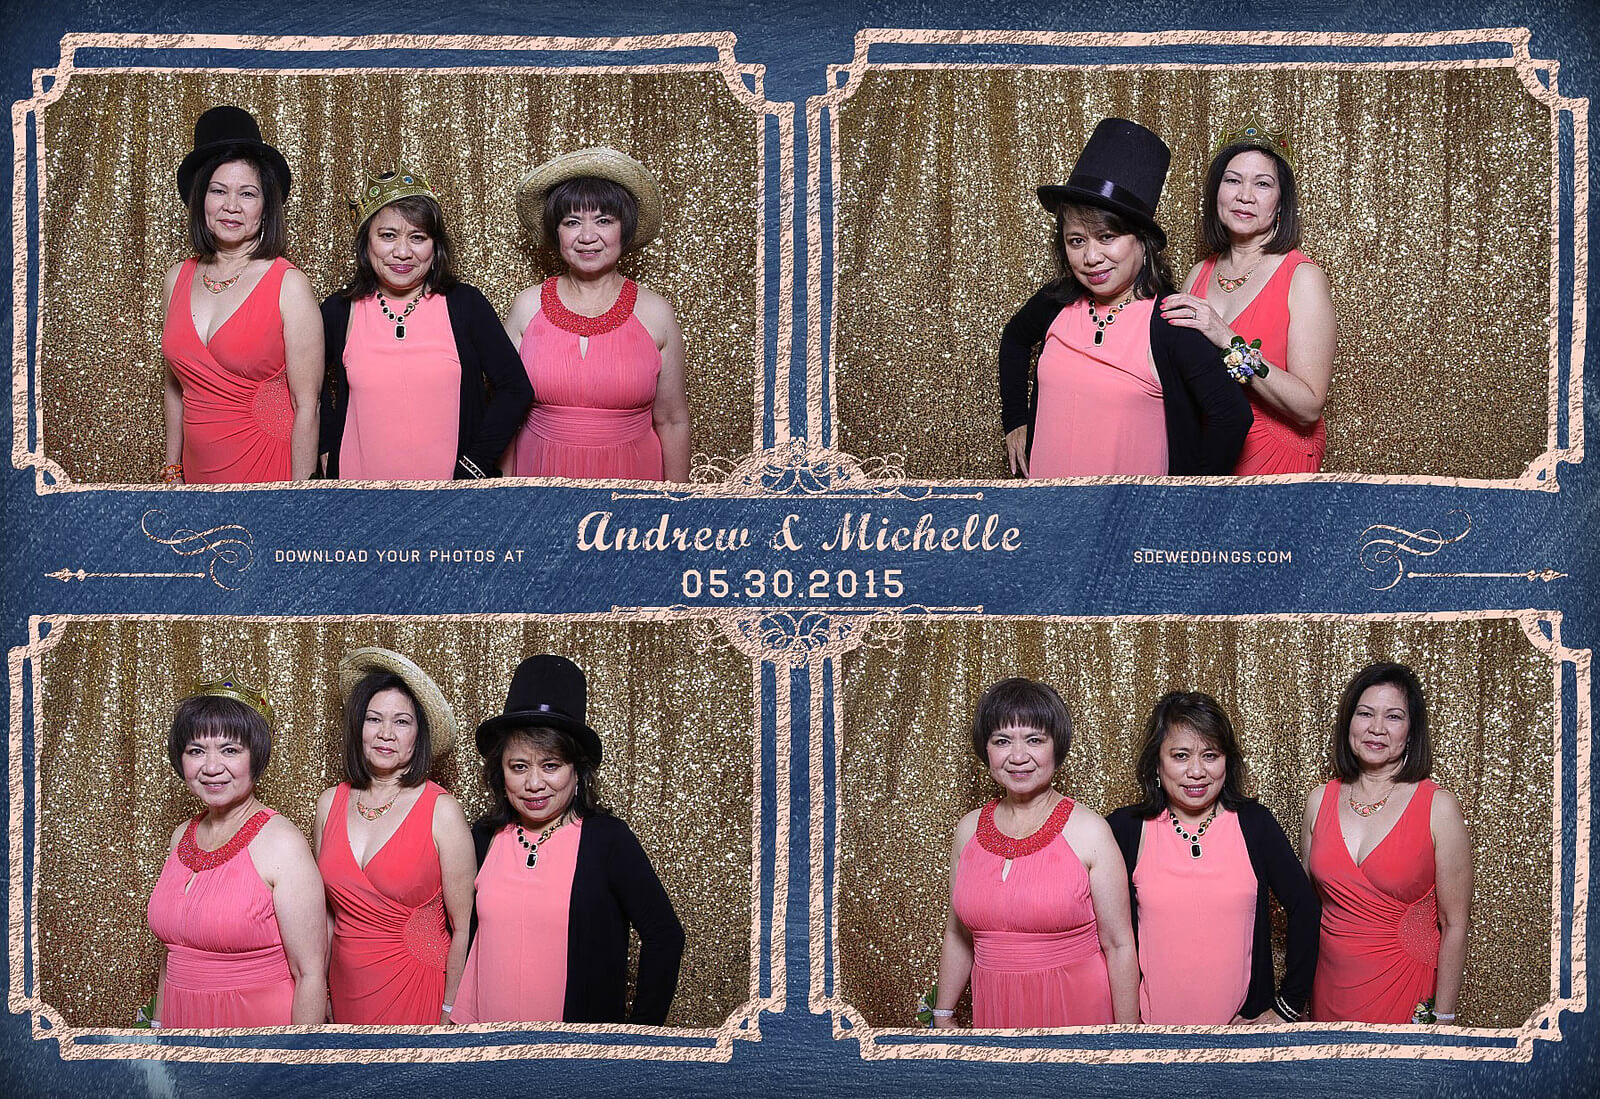 Toronto Police Wedding Photobooth at Peel Regional Police Association Banquet Hall 3